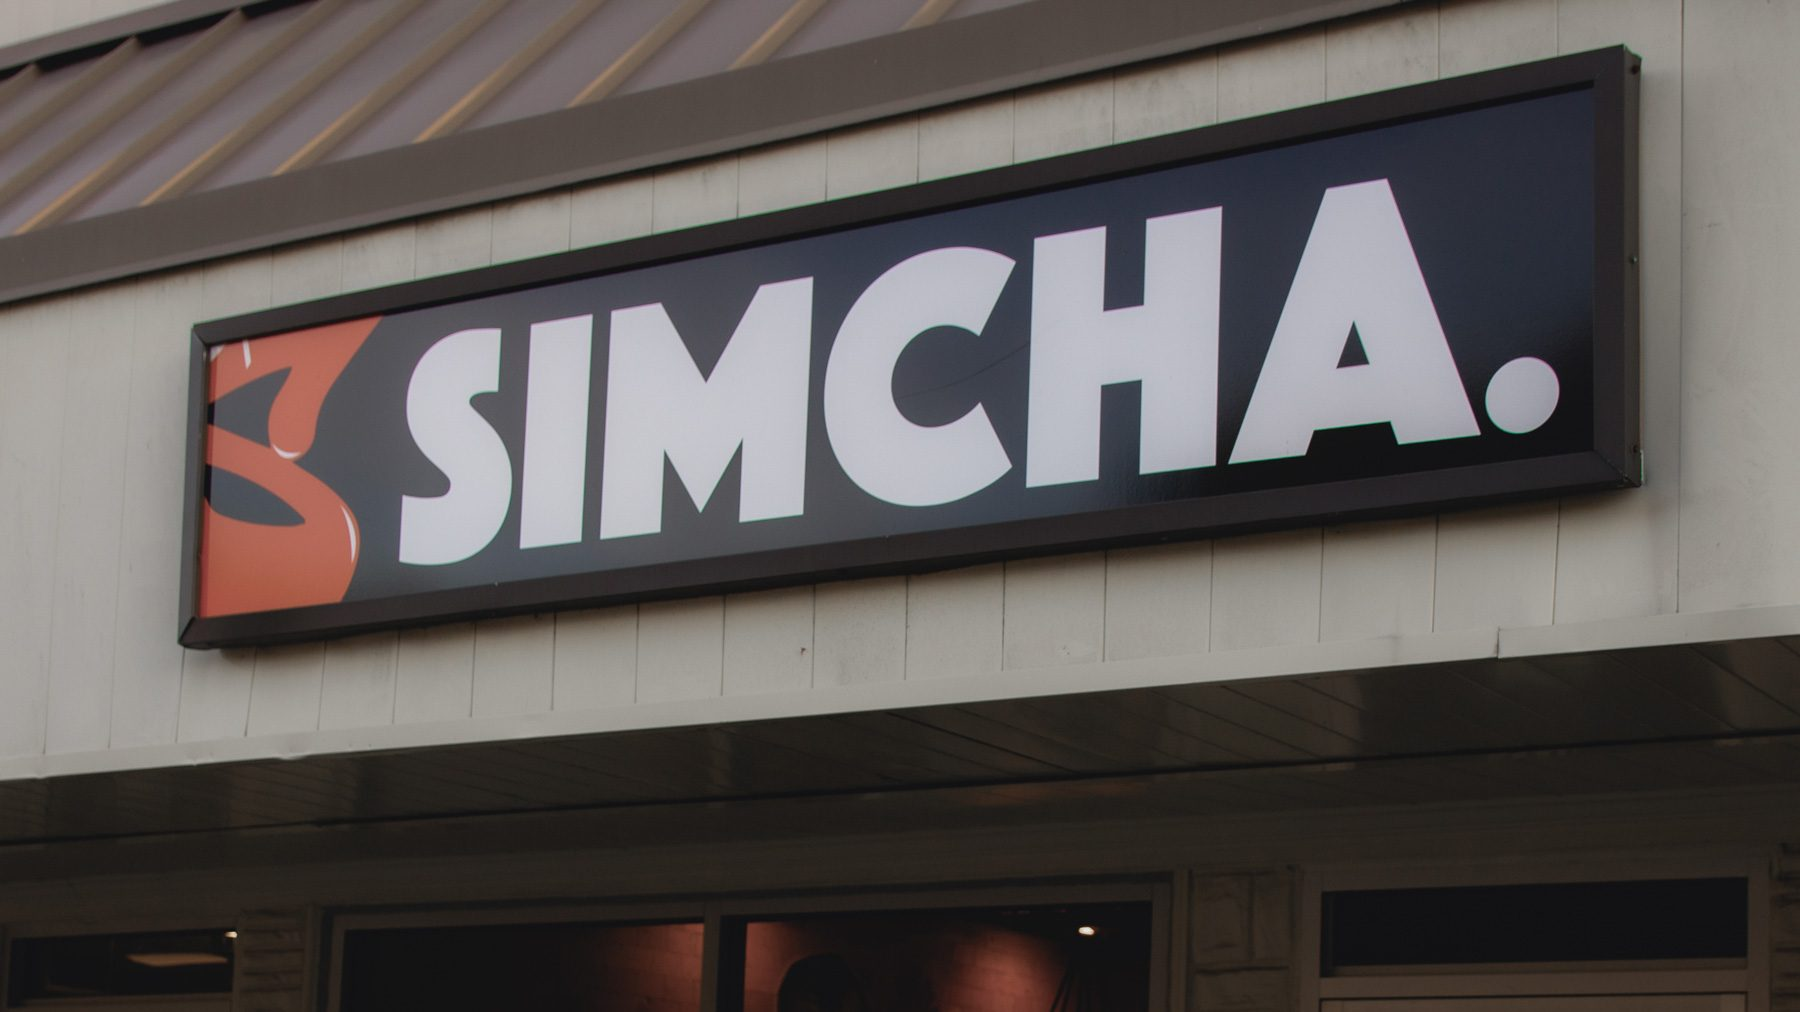 The restaurant sign for Simcha.